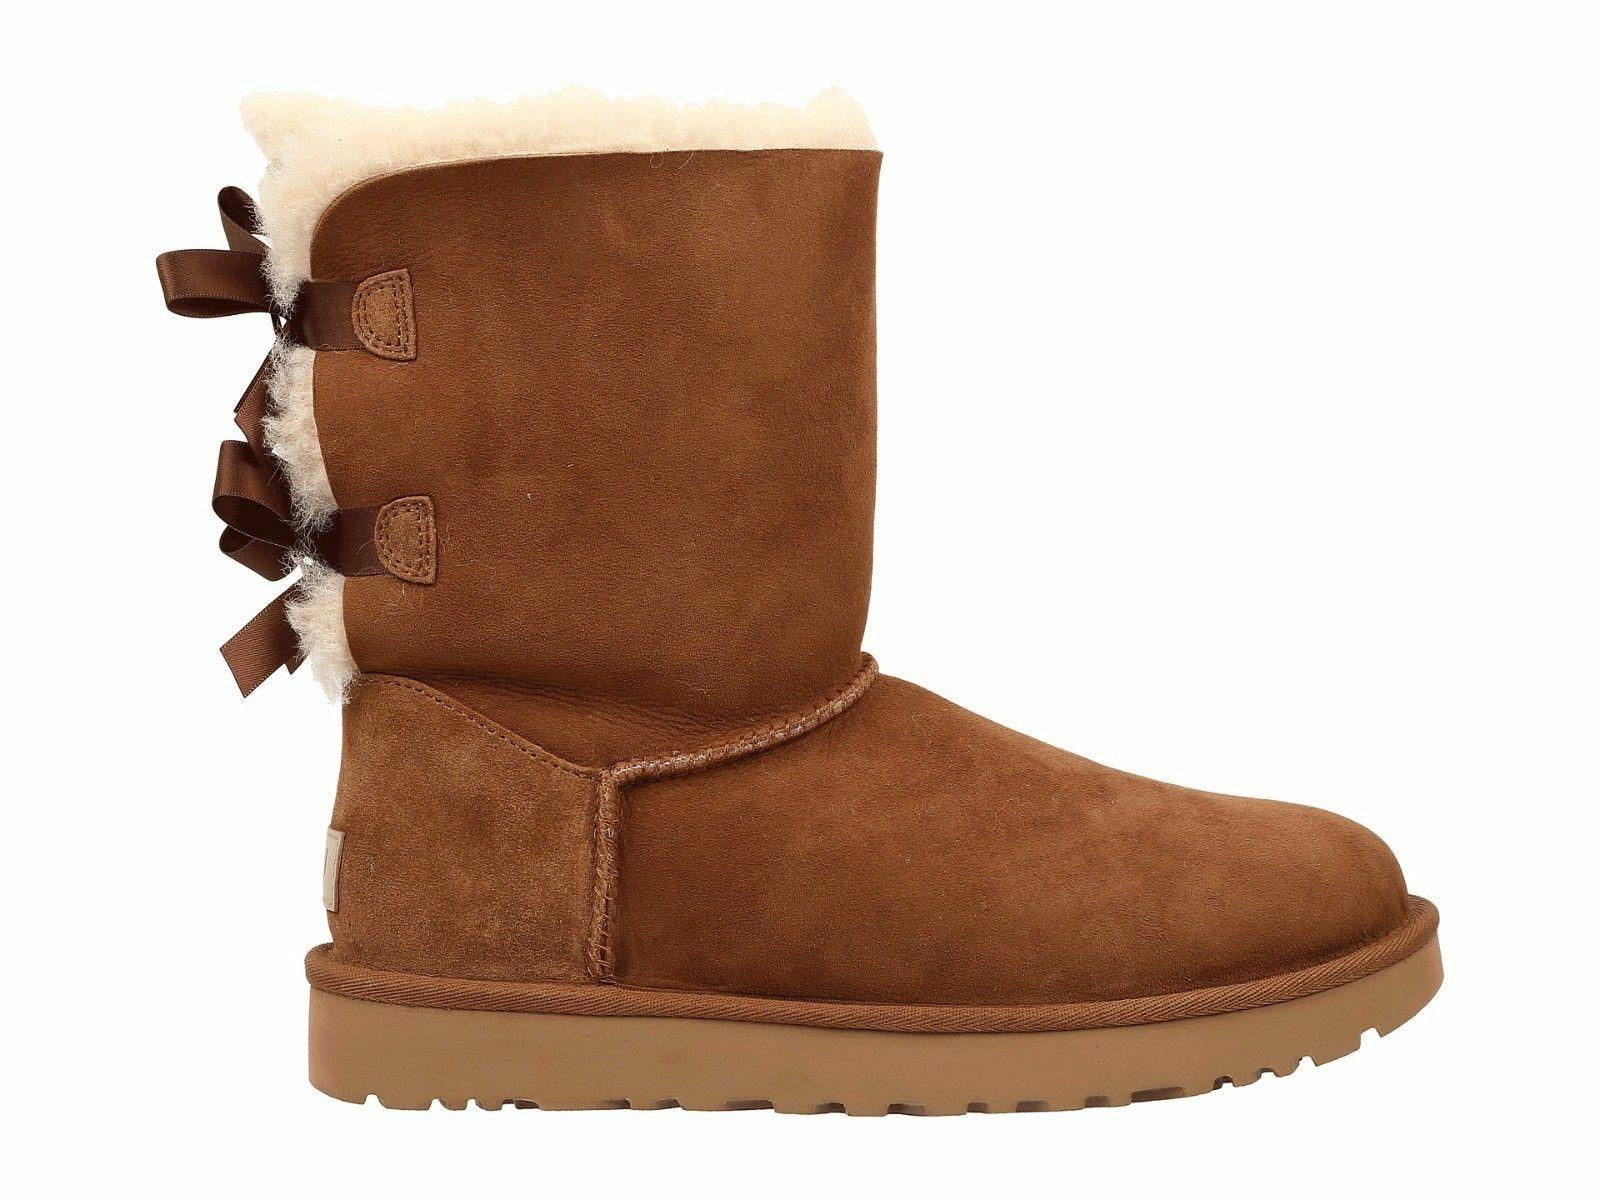 Women's Shoes UGG Bailey Bow II Boots 1016225 Chestnut Resis - *NIB*